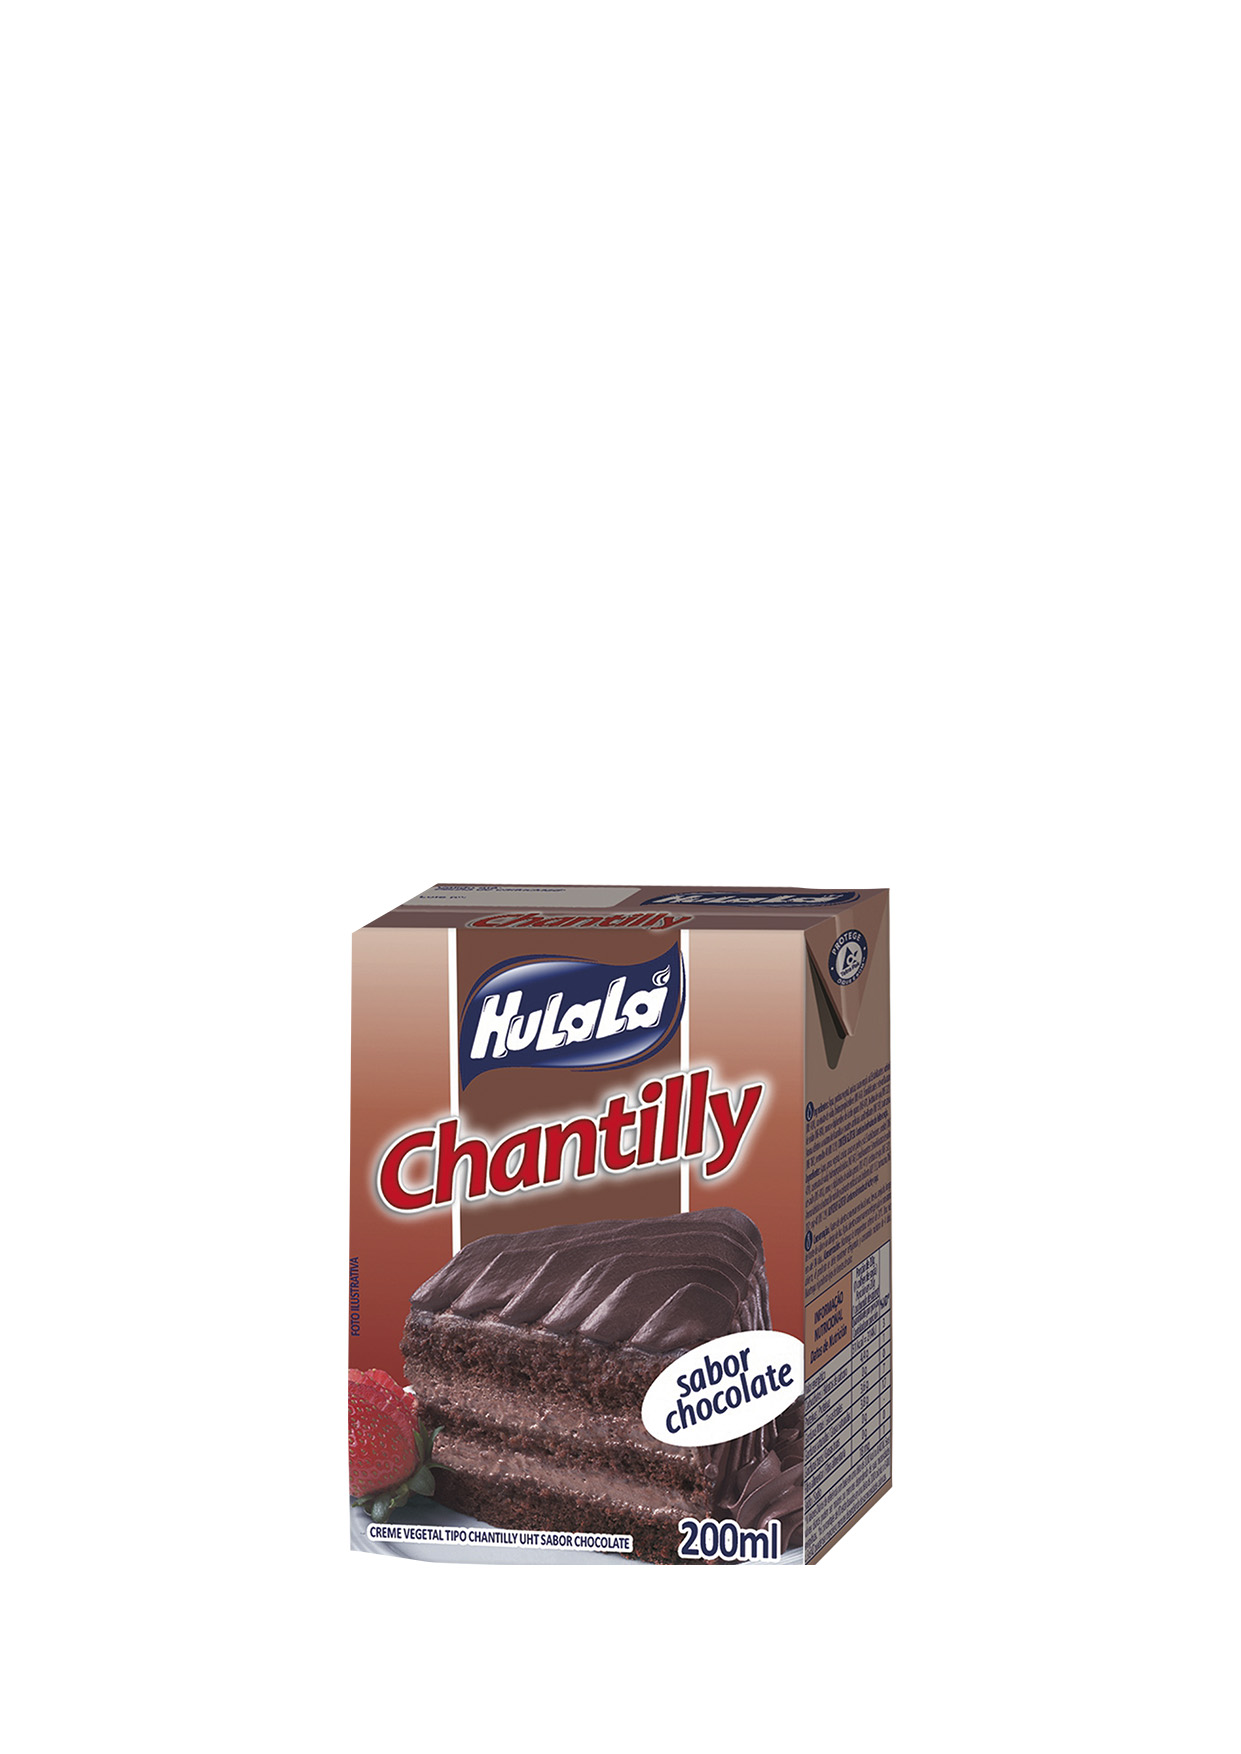 CHANTILLY CHOCOLATE 200ml